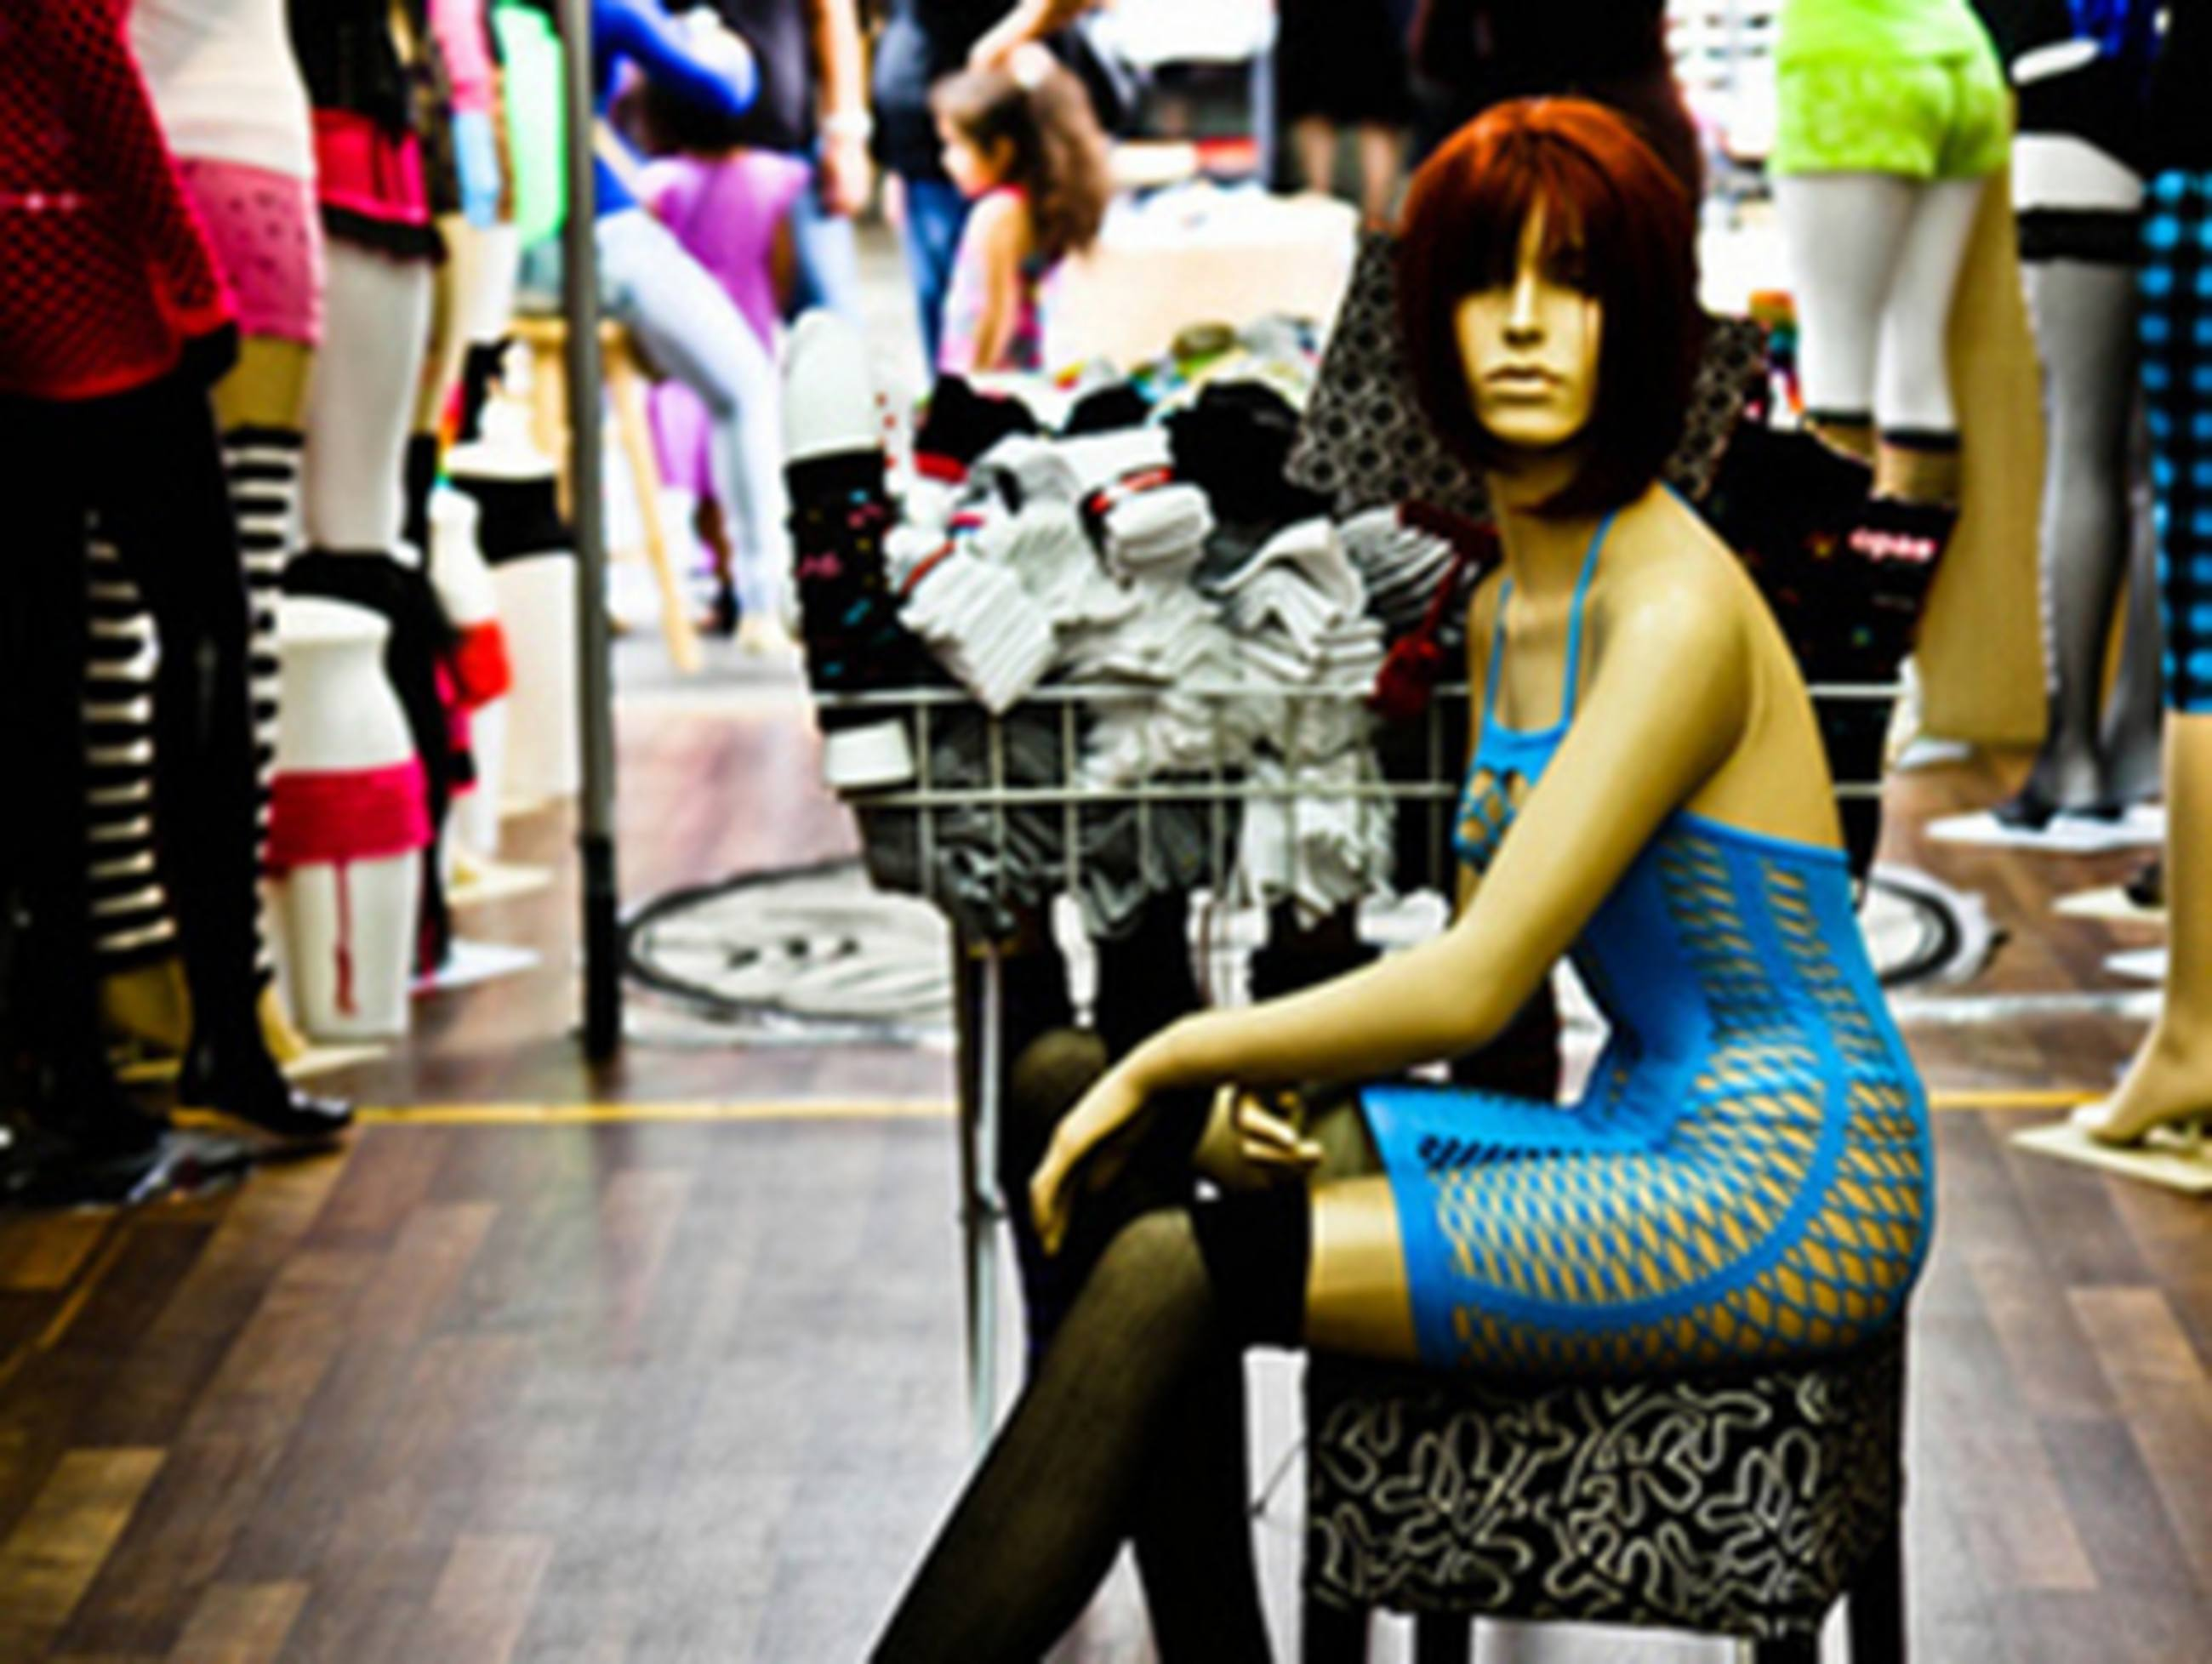 LA Fashion District | courtesy of YBowyer Photography, Flickr